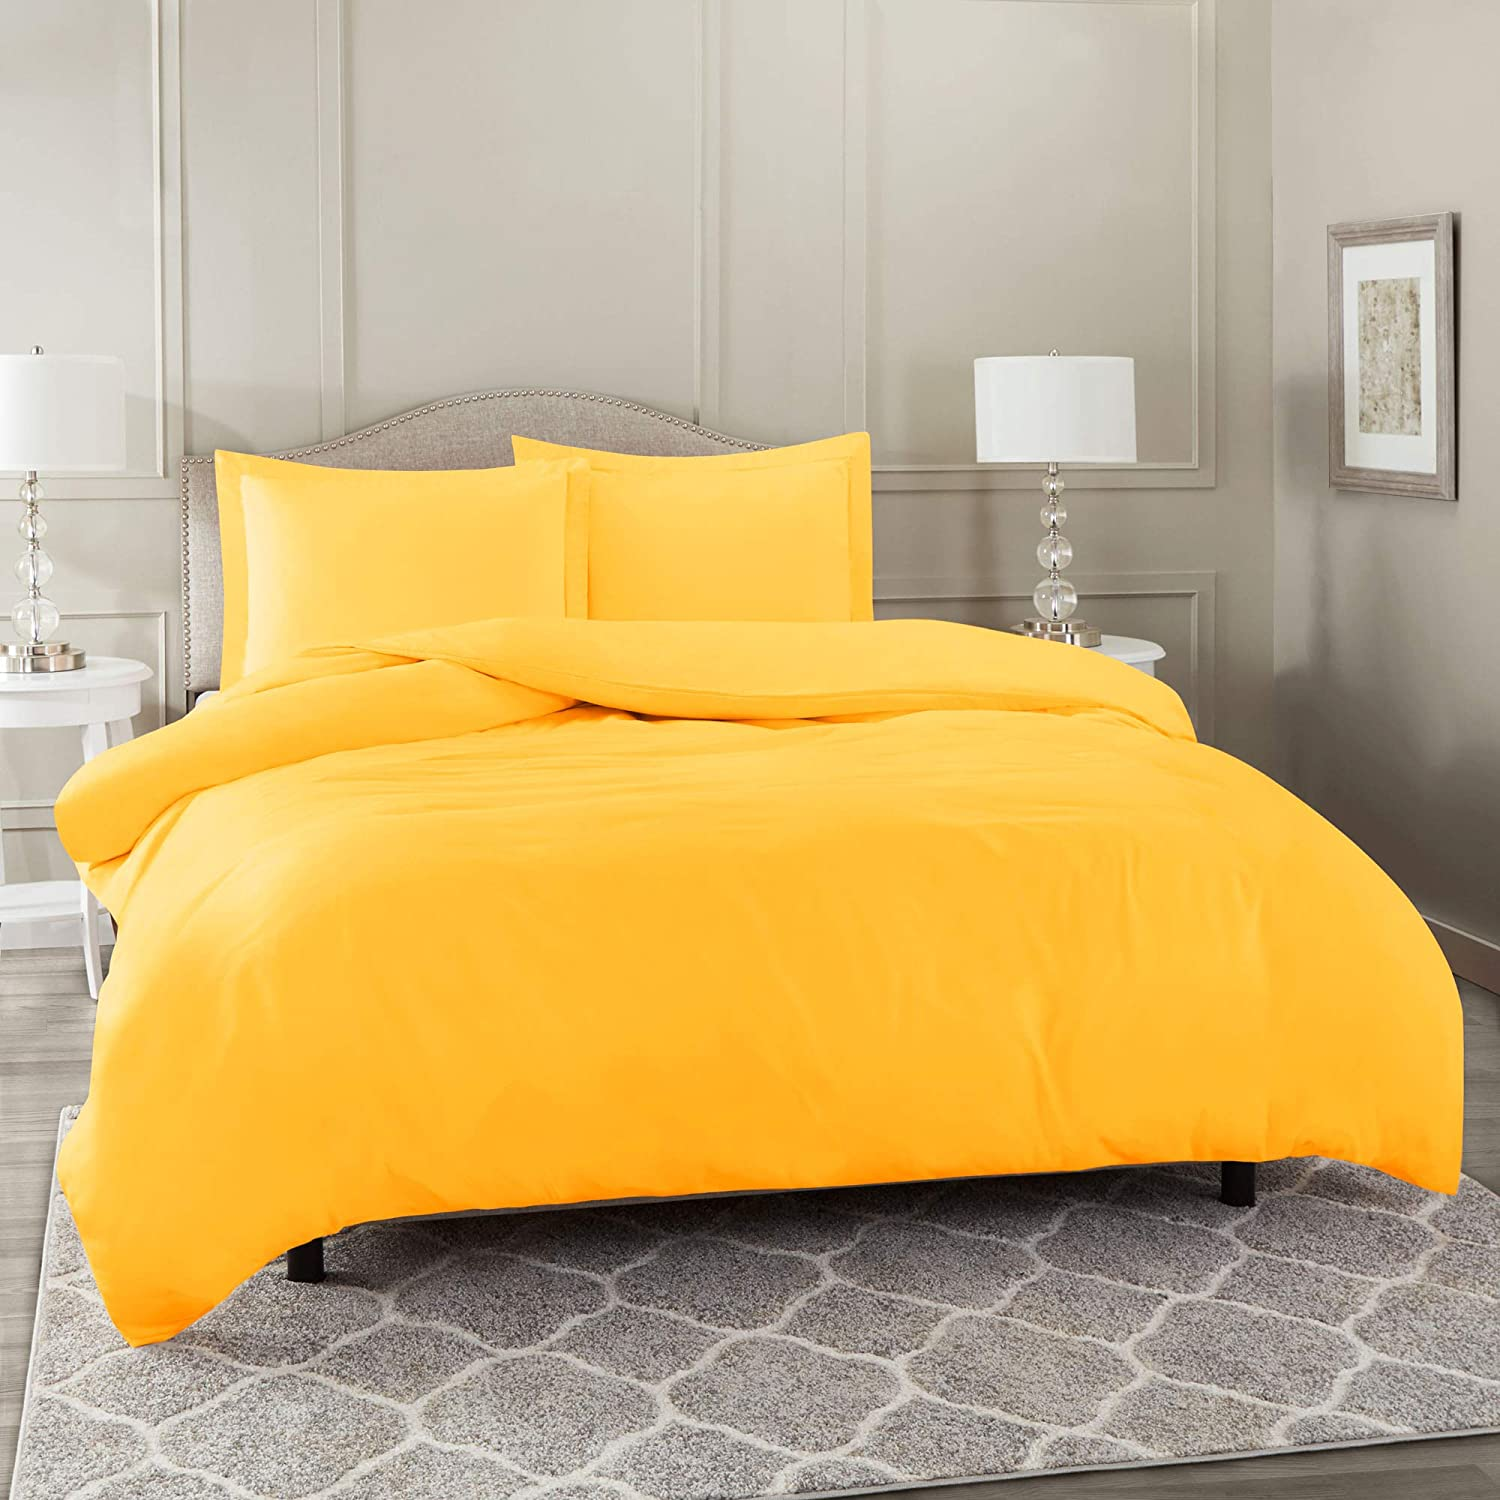 "Nestl Bedding Duvet Cover 3 Piece Set – Ultra Soft Double Brushed Microfiber Hotel Collection – Comforter Cover with Button Closure and 2 Pillow Shams, Yellow - Full (Double) 80""x90"""